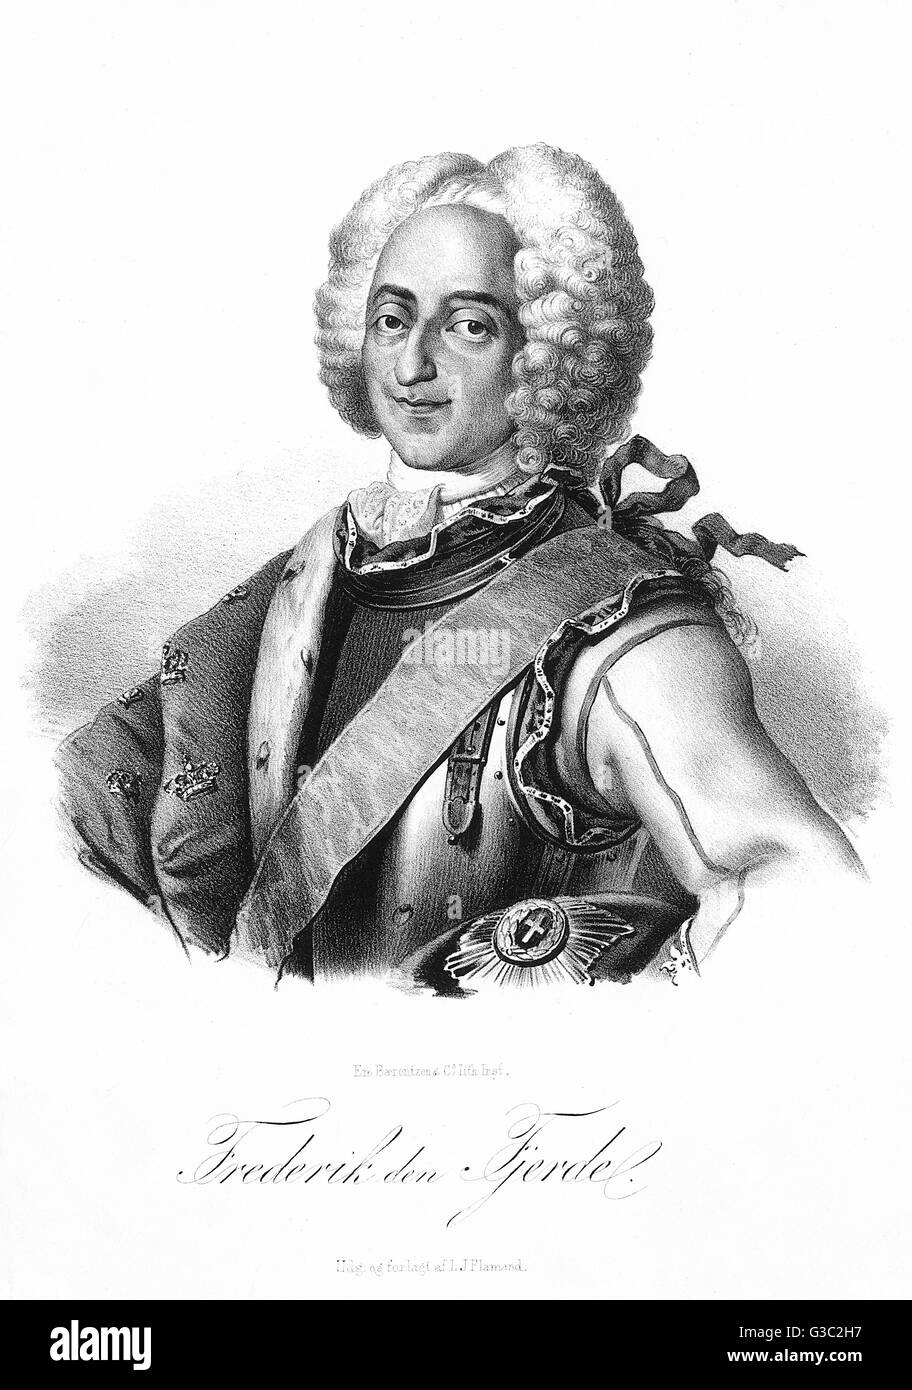 Frederick IV of Denmark (1671-1730). King of Denmark and Norway from 1699 until his death.     Date: C.1720 - Stock Image